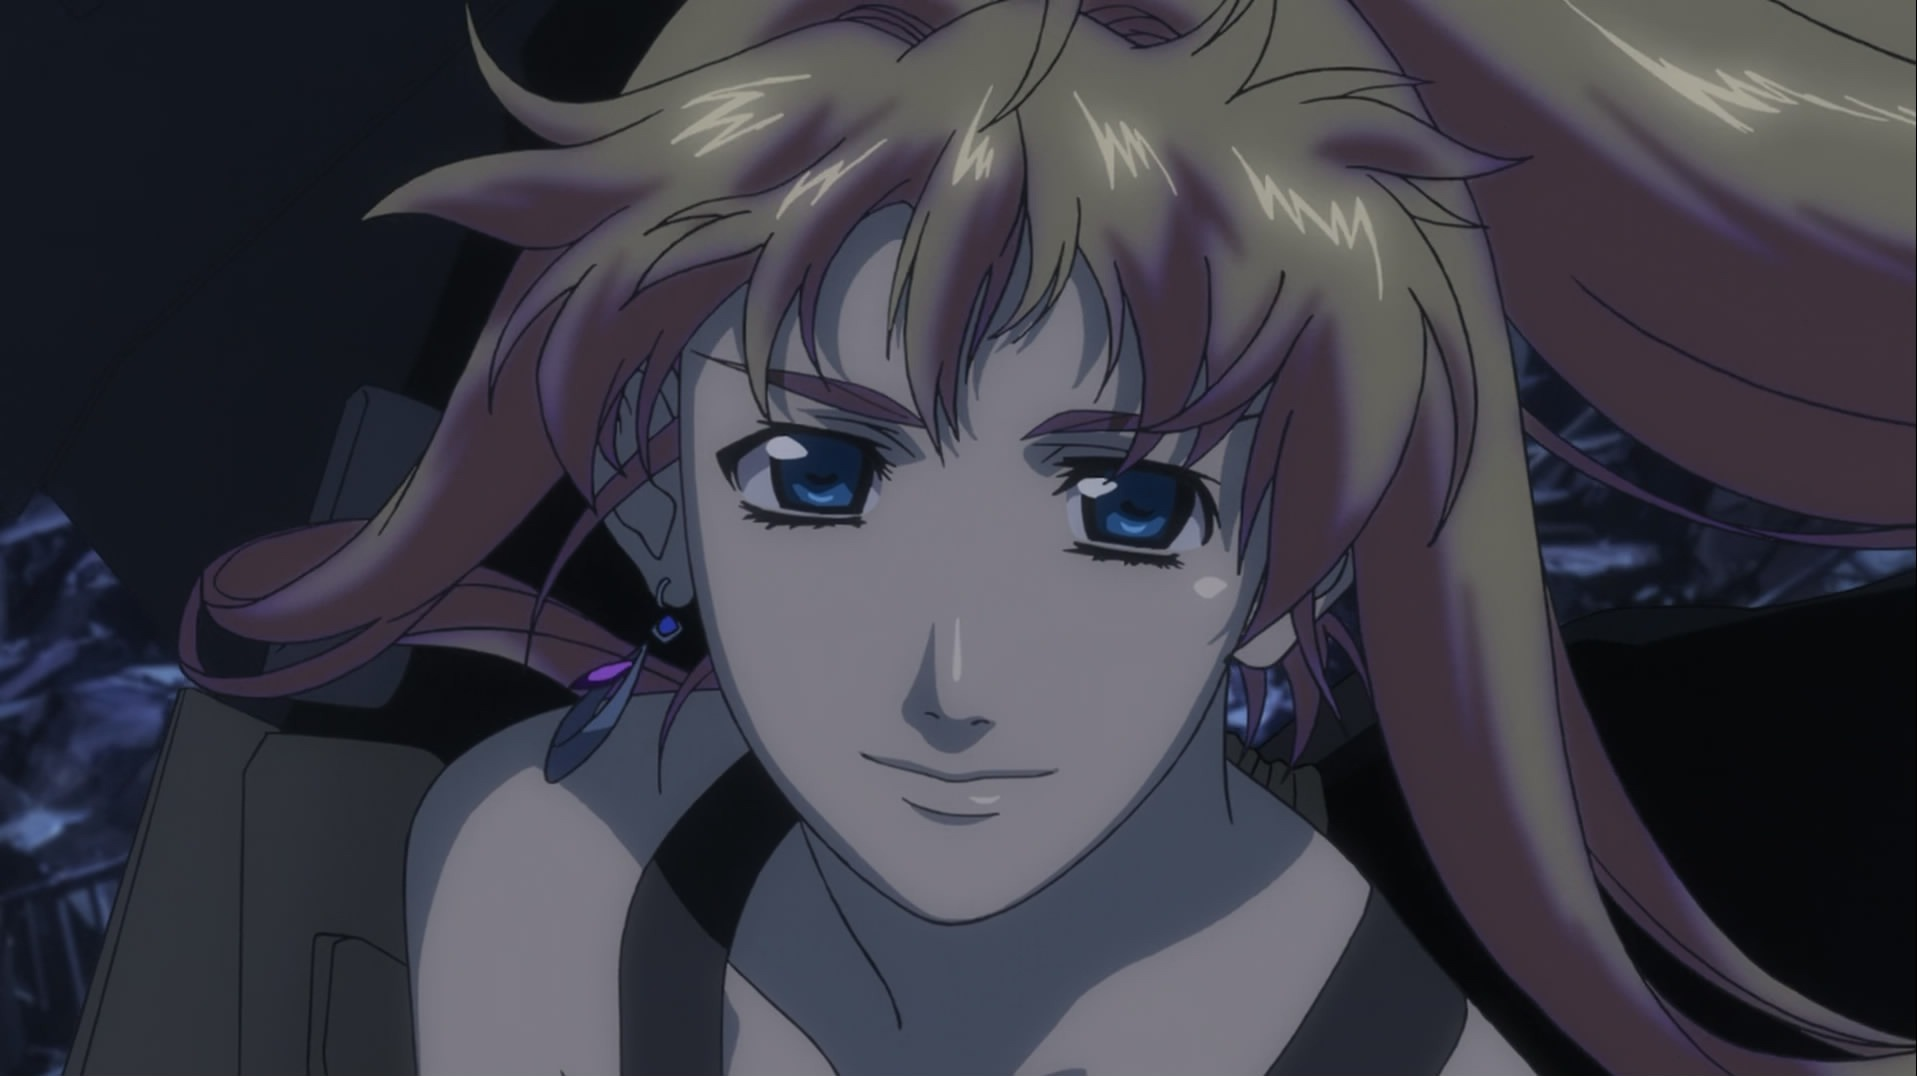 Who are your waifus? (continued to 2015, waifu slots extended to 7)  - Page 4 Commie-macross-frontier-the-movie-sayonara-no-tsubasa-bd-1080p-aac-66ae8f11-mkv_snapshot_01-33-5